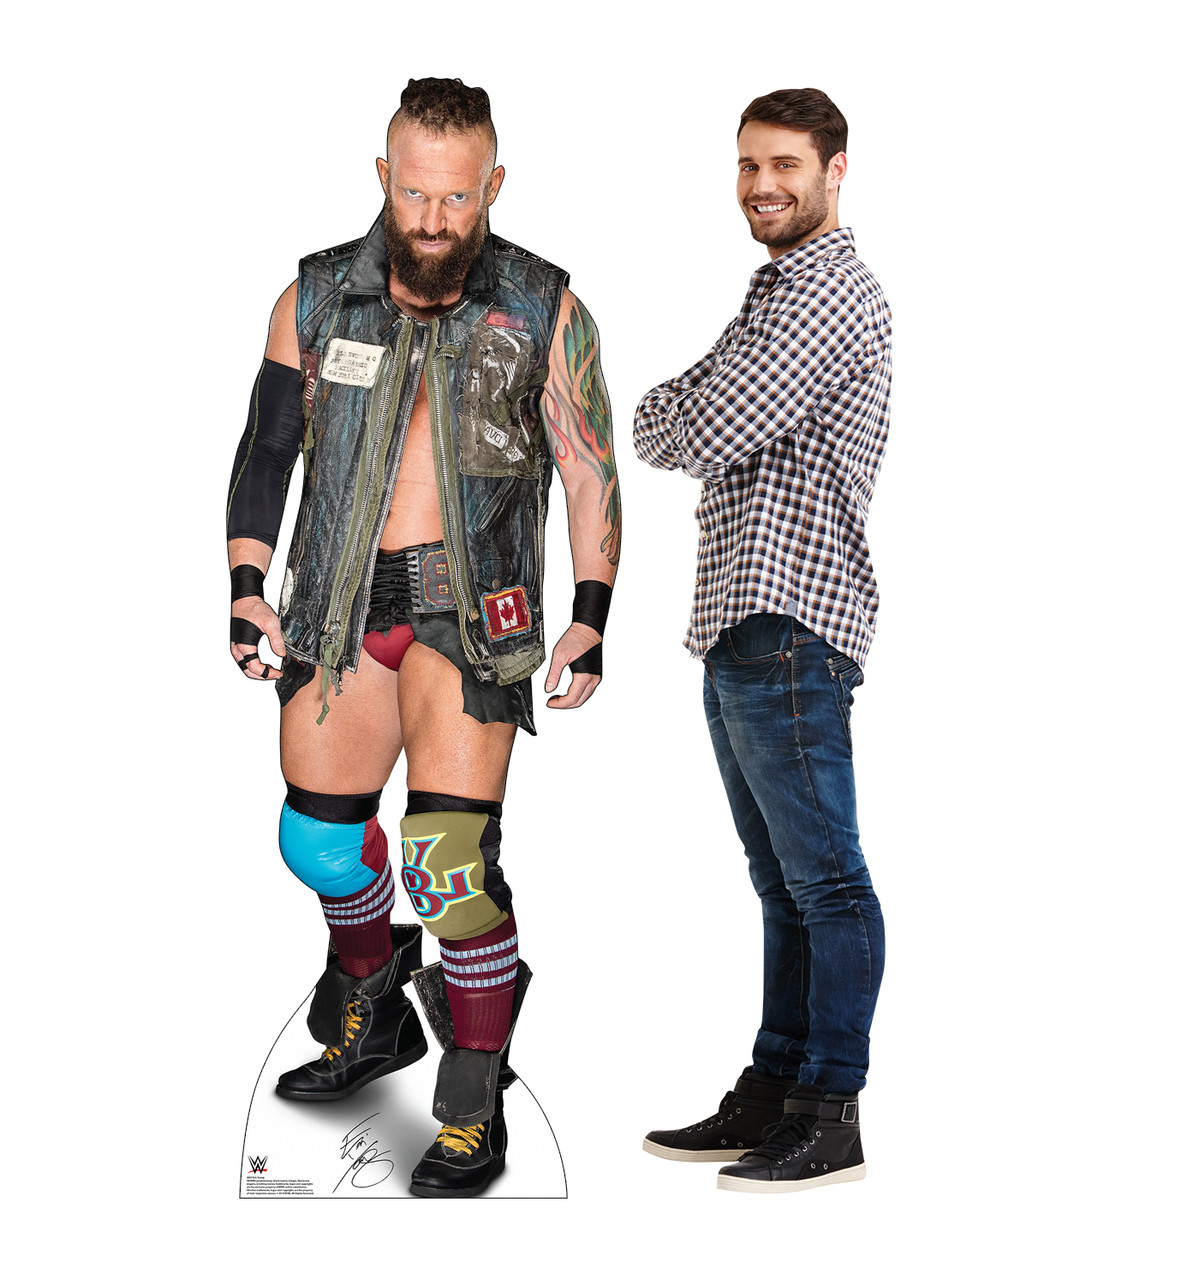 Life-size cardboard standee of Eric Young - WWE with model.